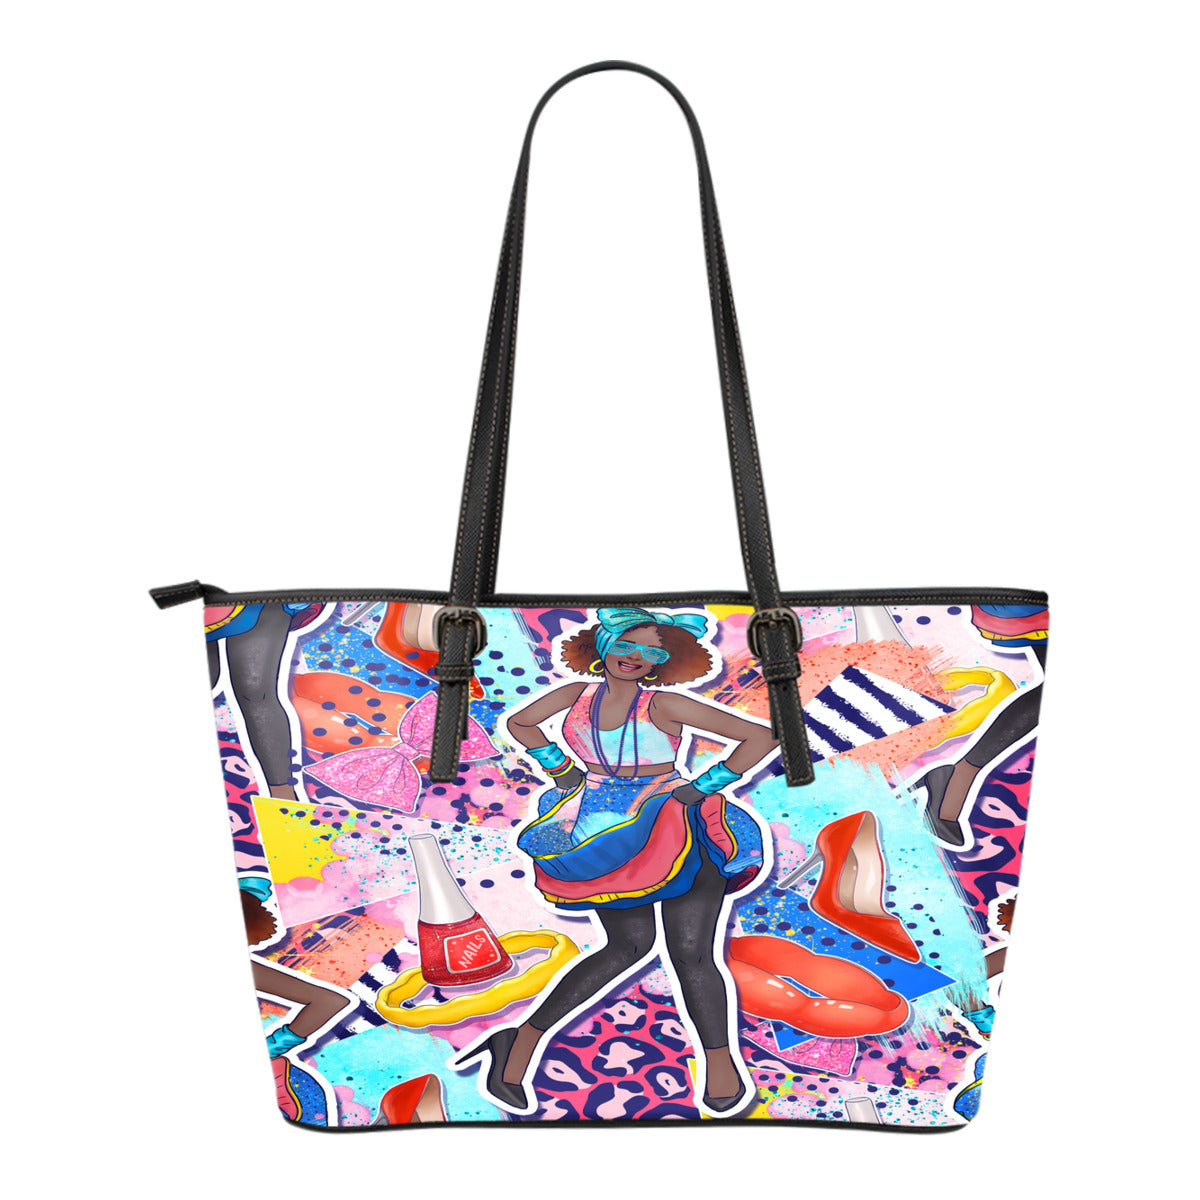 80s Fashion Themed Design C9 Women Small Leather Tote Bag